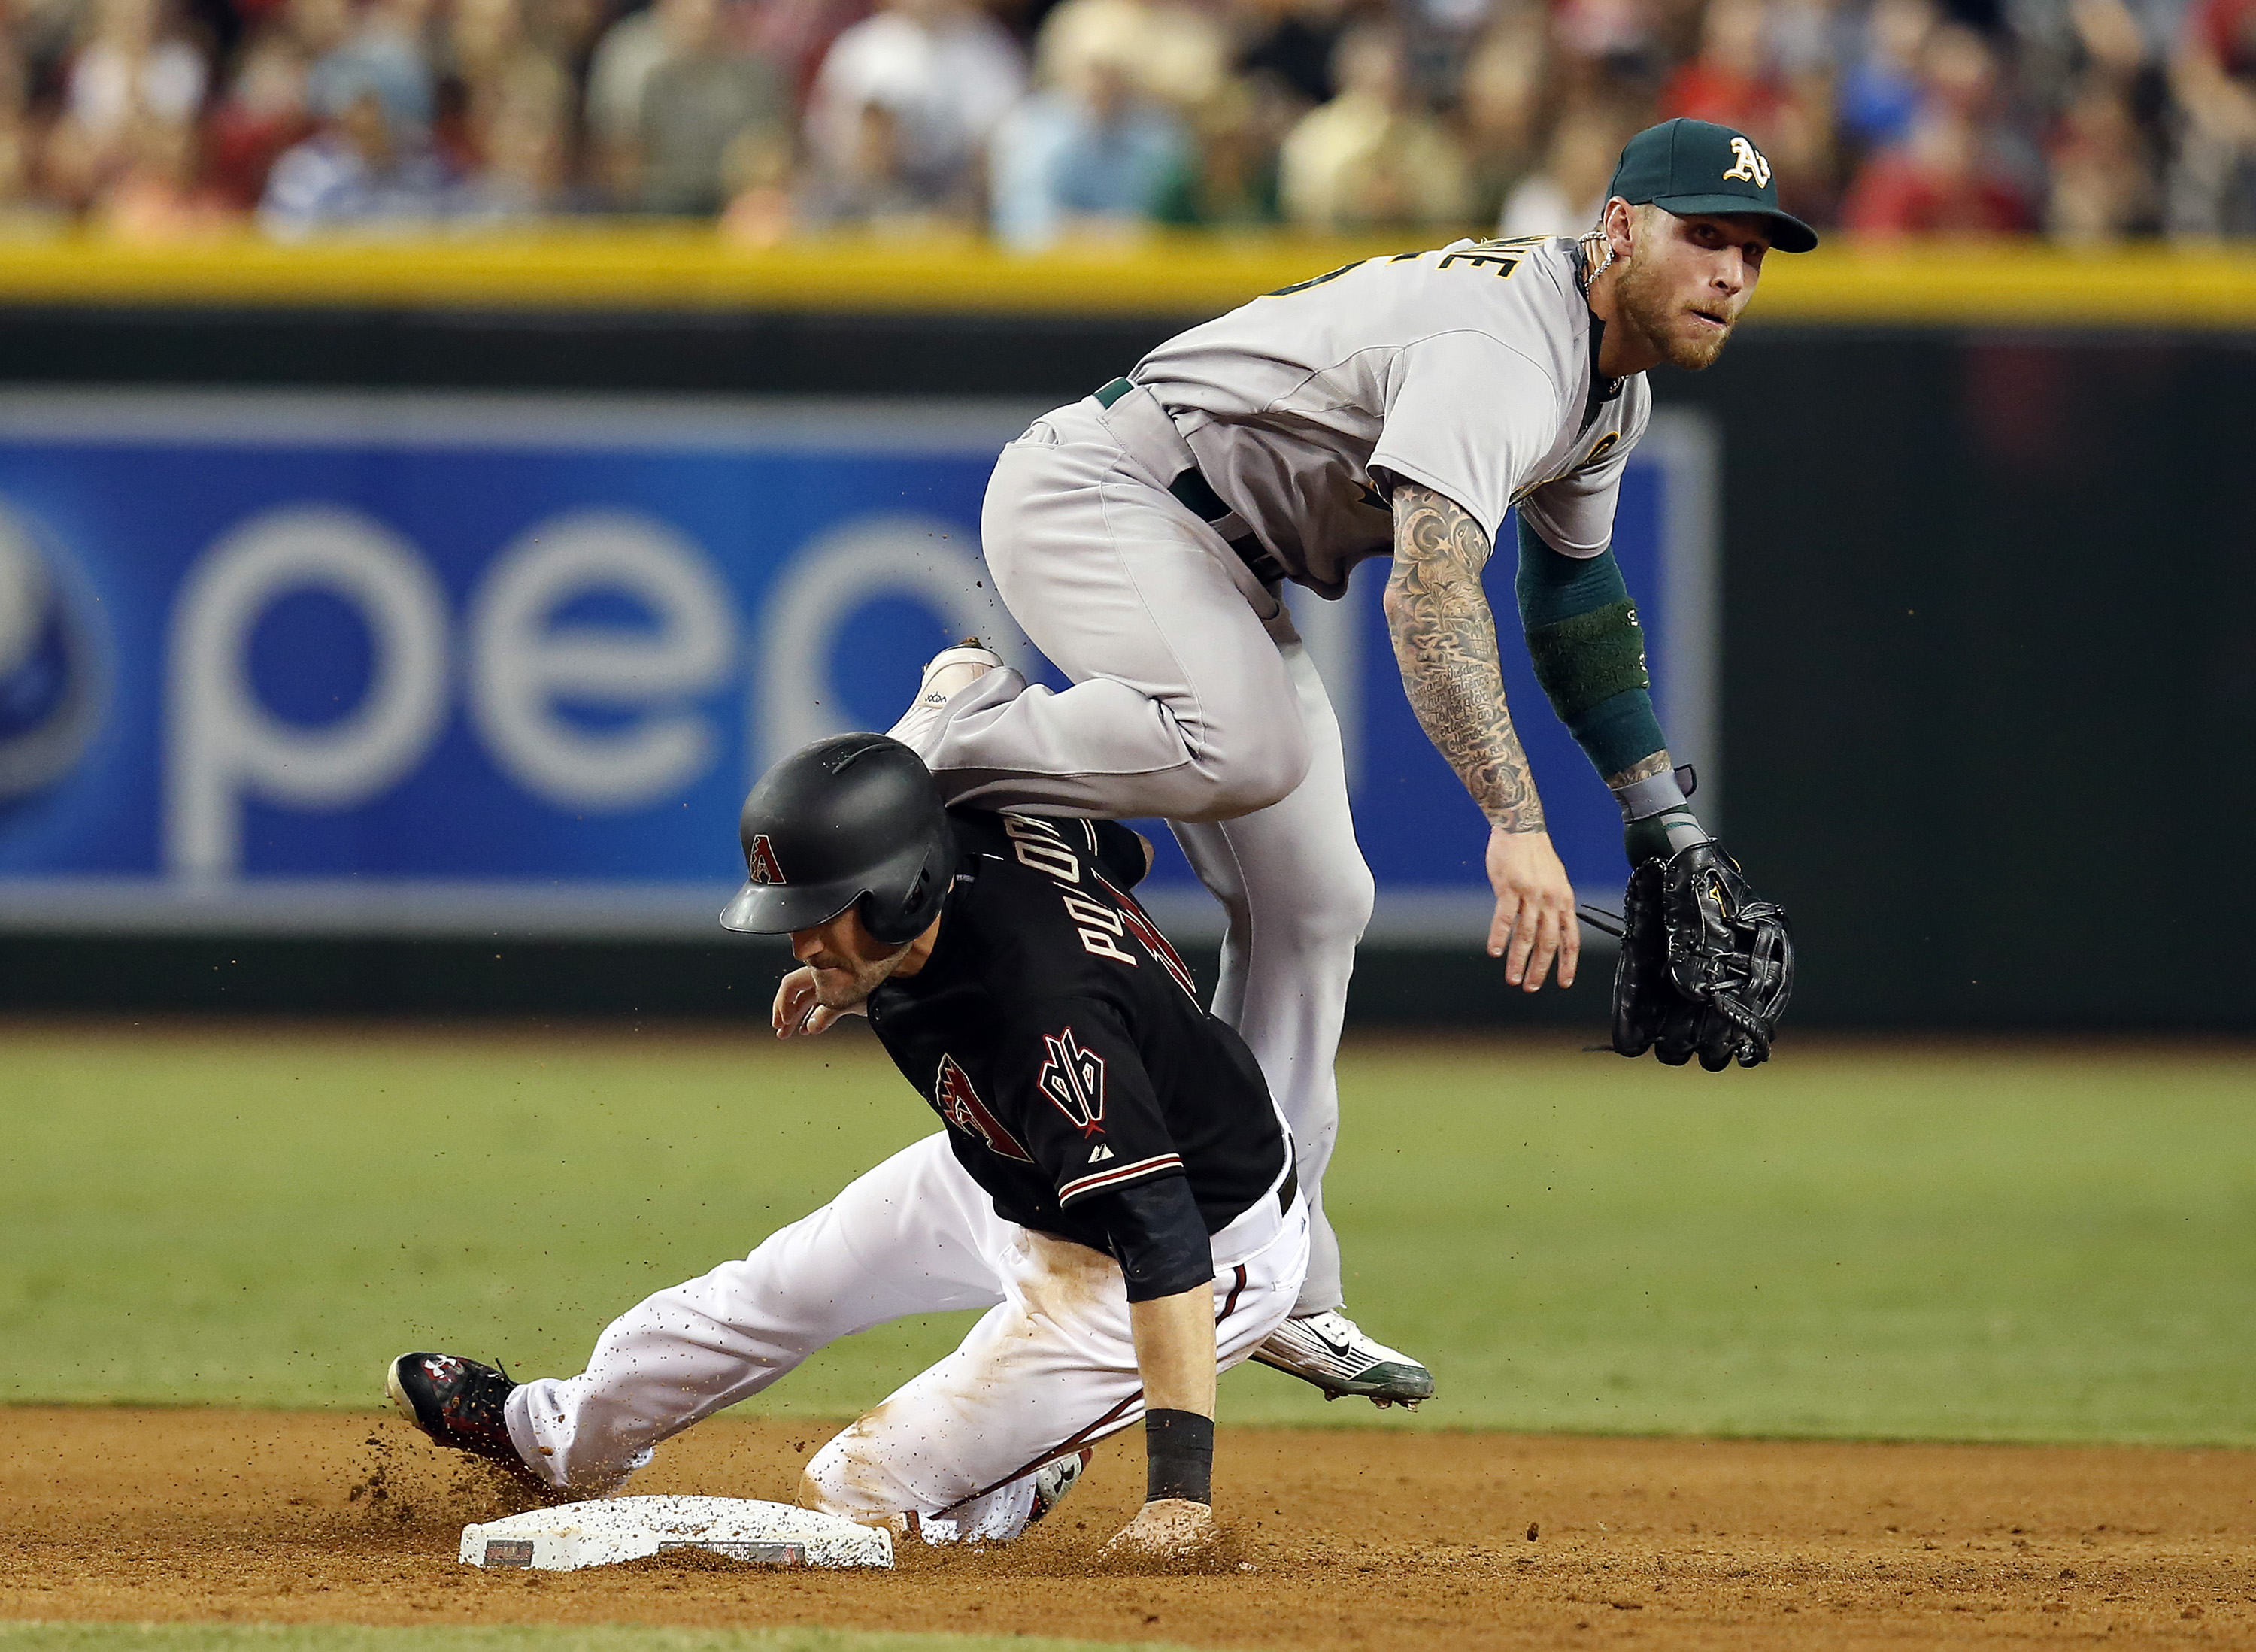 Oakland Athletics second baseman Brett Lawrie, right, turns the double play while avoiding Arizona Diamondbacks A.J. Pollock on a ball hit by Paul Goldschmidt in the fifth inning during a baseball game, Saturday, Aug. 29, 2015, in Phoenix. (AP Photo/Rick